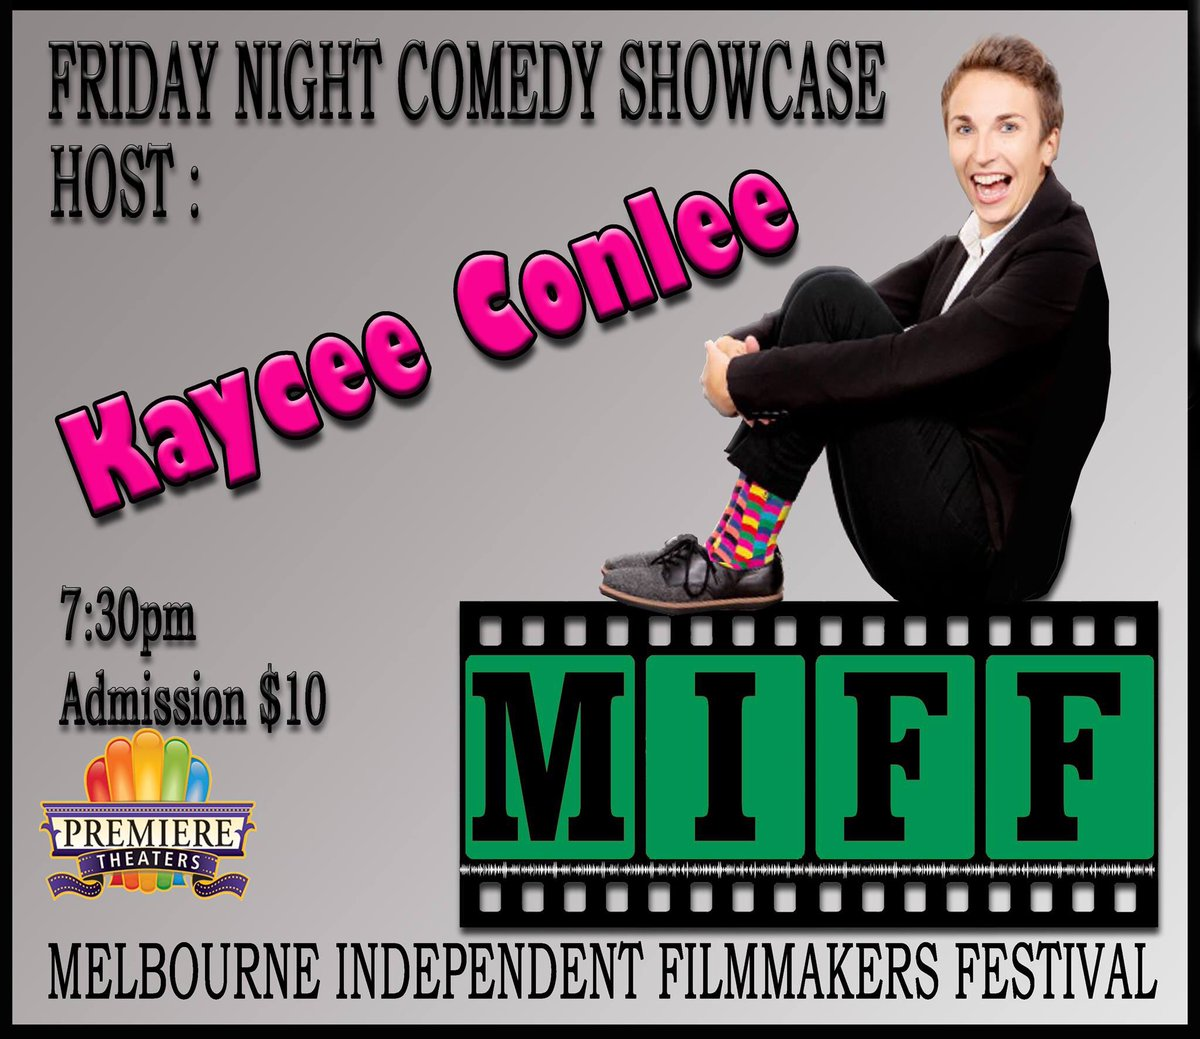 Friday night, Oct 18th, is full of laughs as comedian @kayceefosho  #KayceeConlee  emcees MIFF's Comedy Showcase. Kaycee kicks off the show with her comedy best before hosting a series of humorous short films #comedy  #miff2019  #melbourneindependentfilmmakersfestival